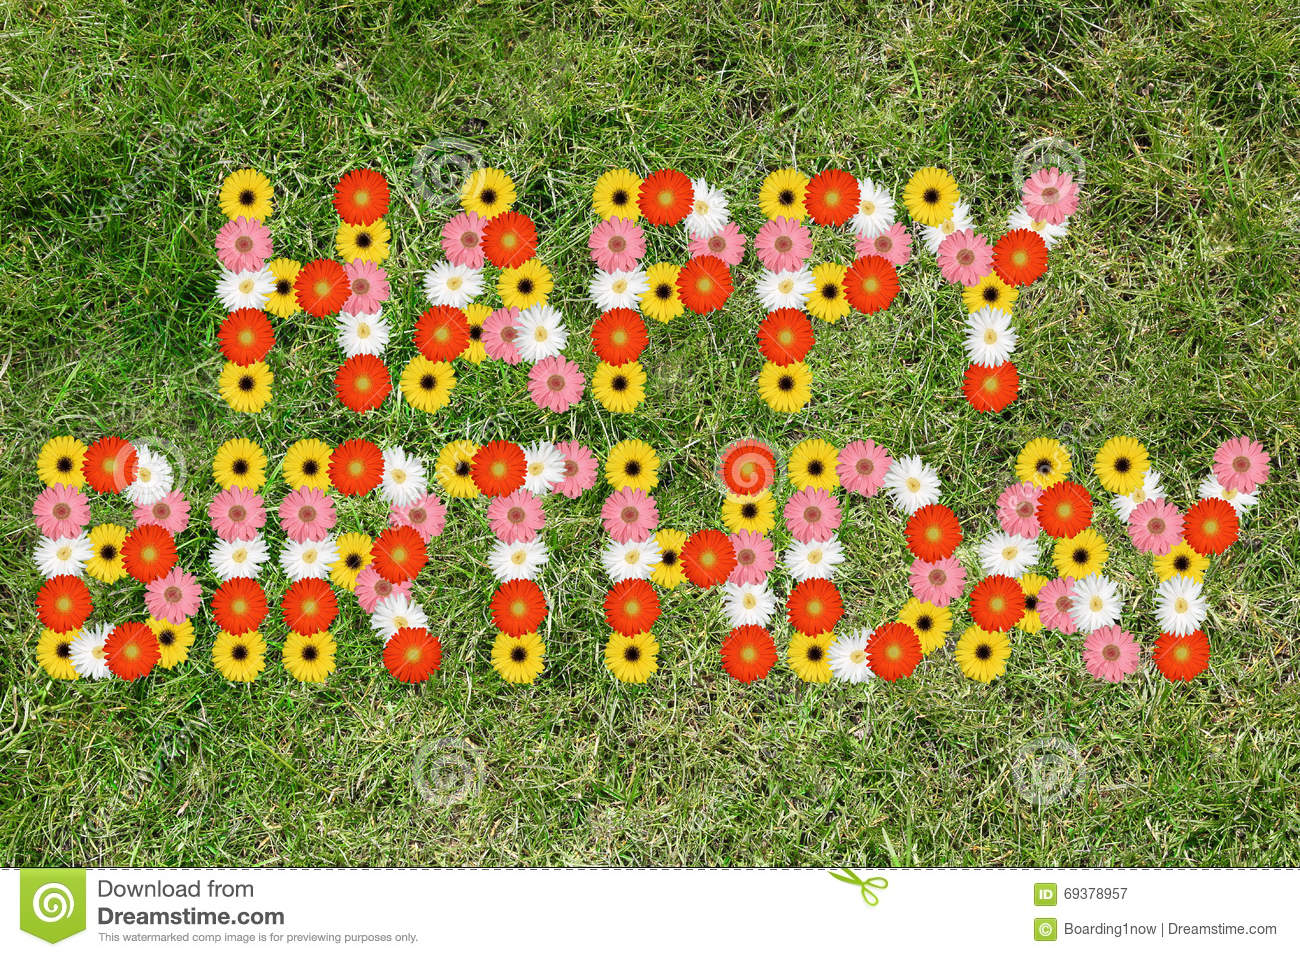 Happy birthday with flowers flower nature meadow stock image image happy birthday with flowers flower nature meadow izmirmasajfo